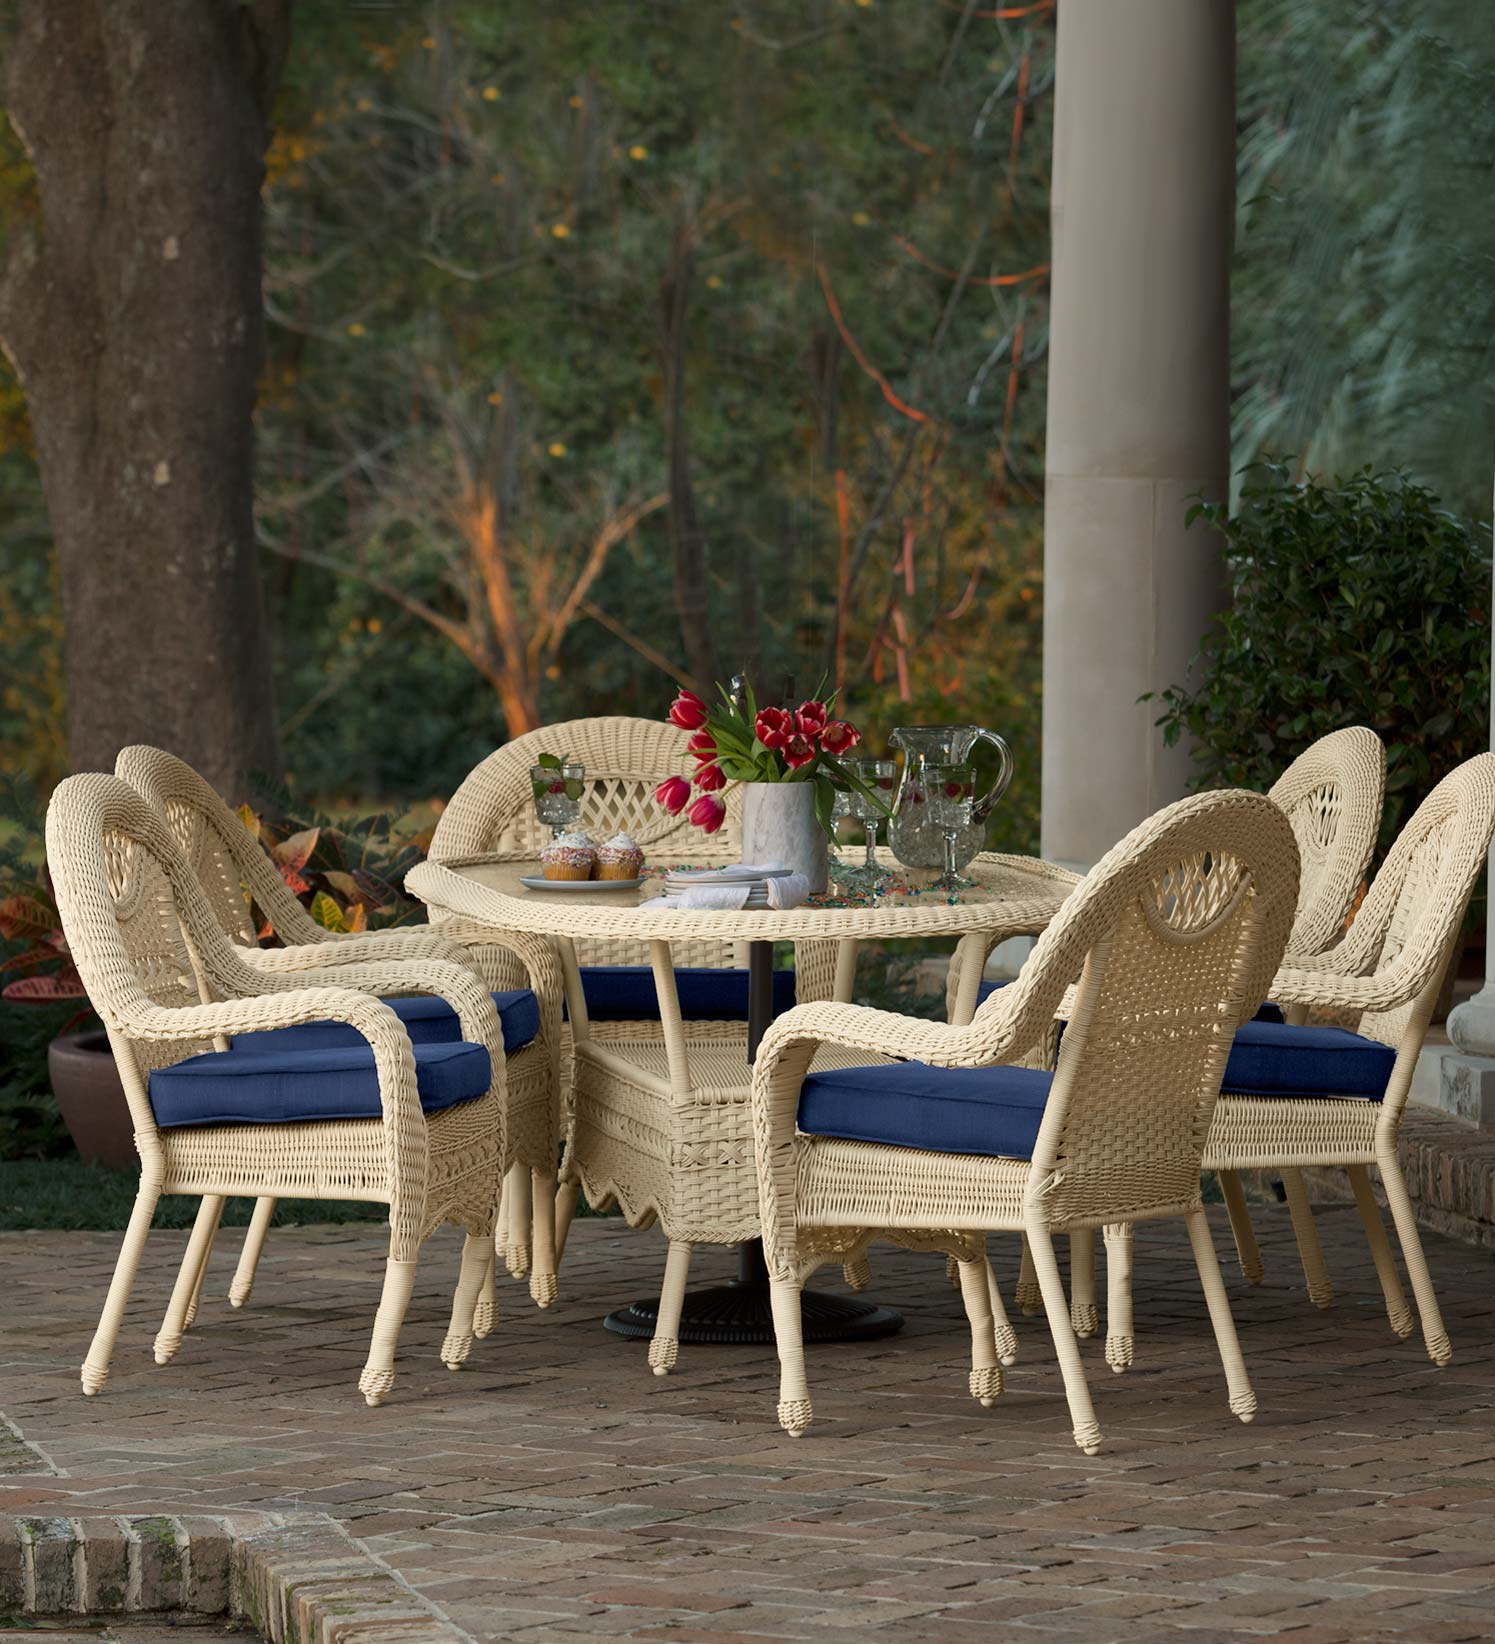 Prospect Hill Outdoor Oval Wicker Dining Table and Set of 6 Chairs